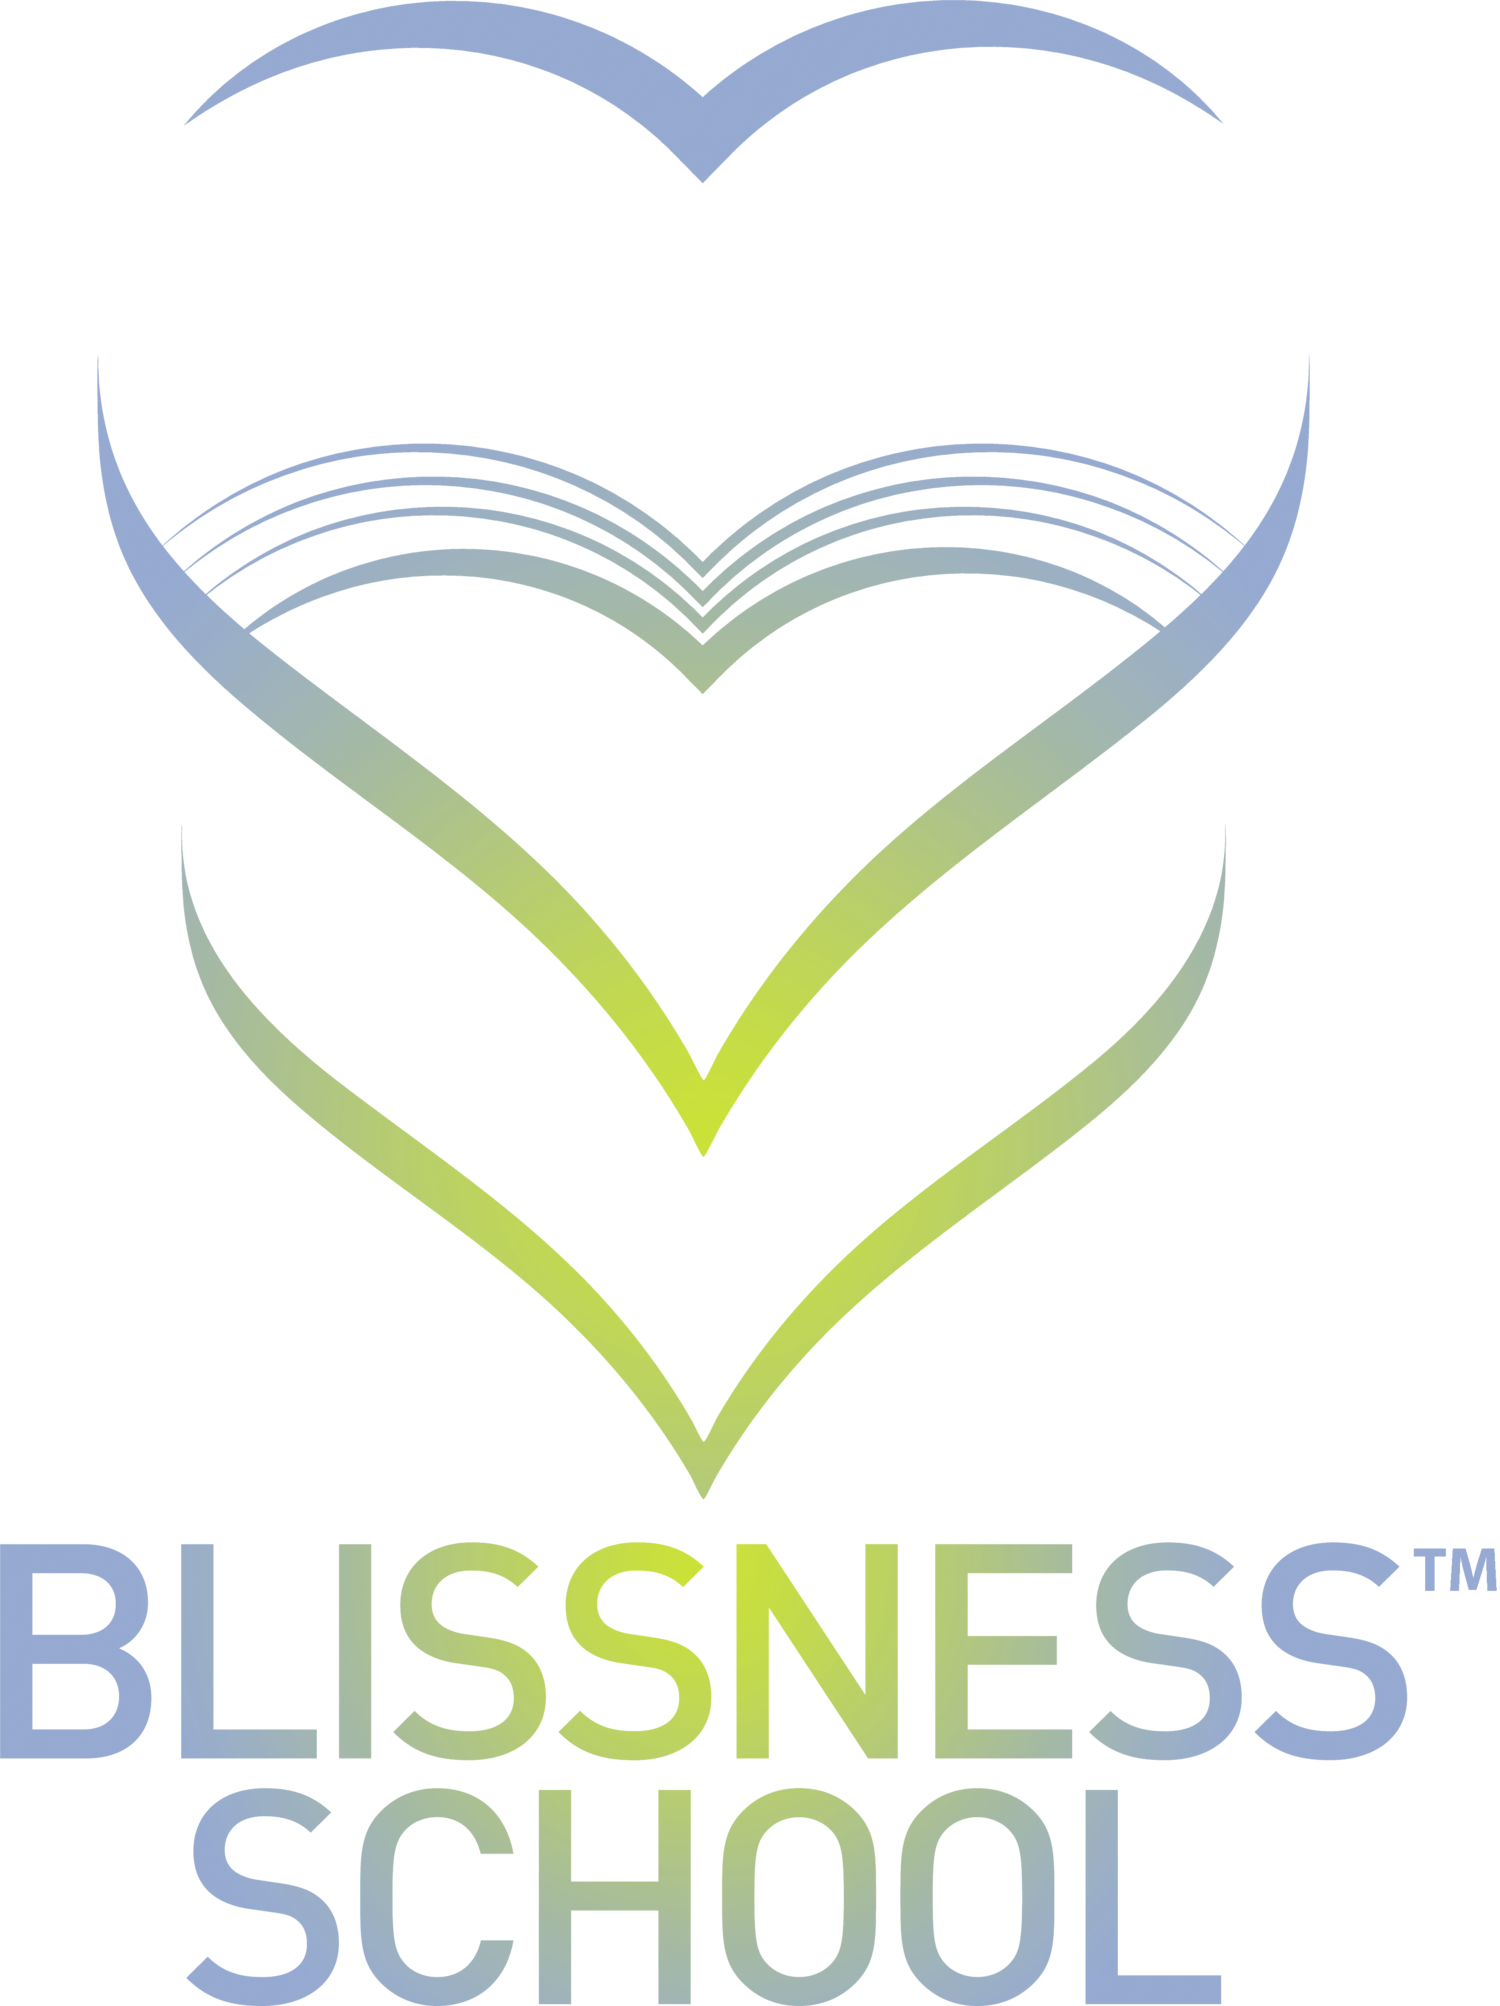 Mission blissness school . Missions clipart statement purpose